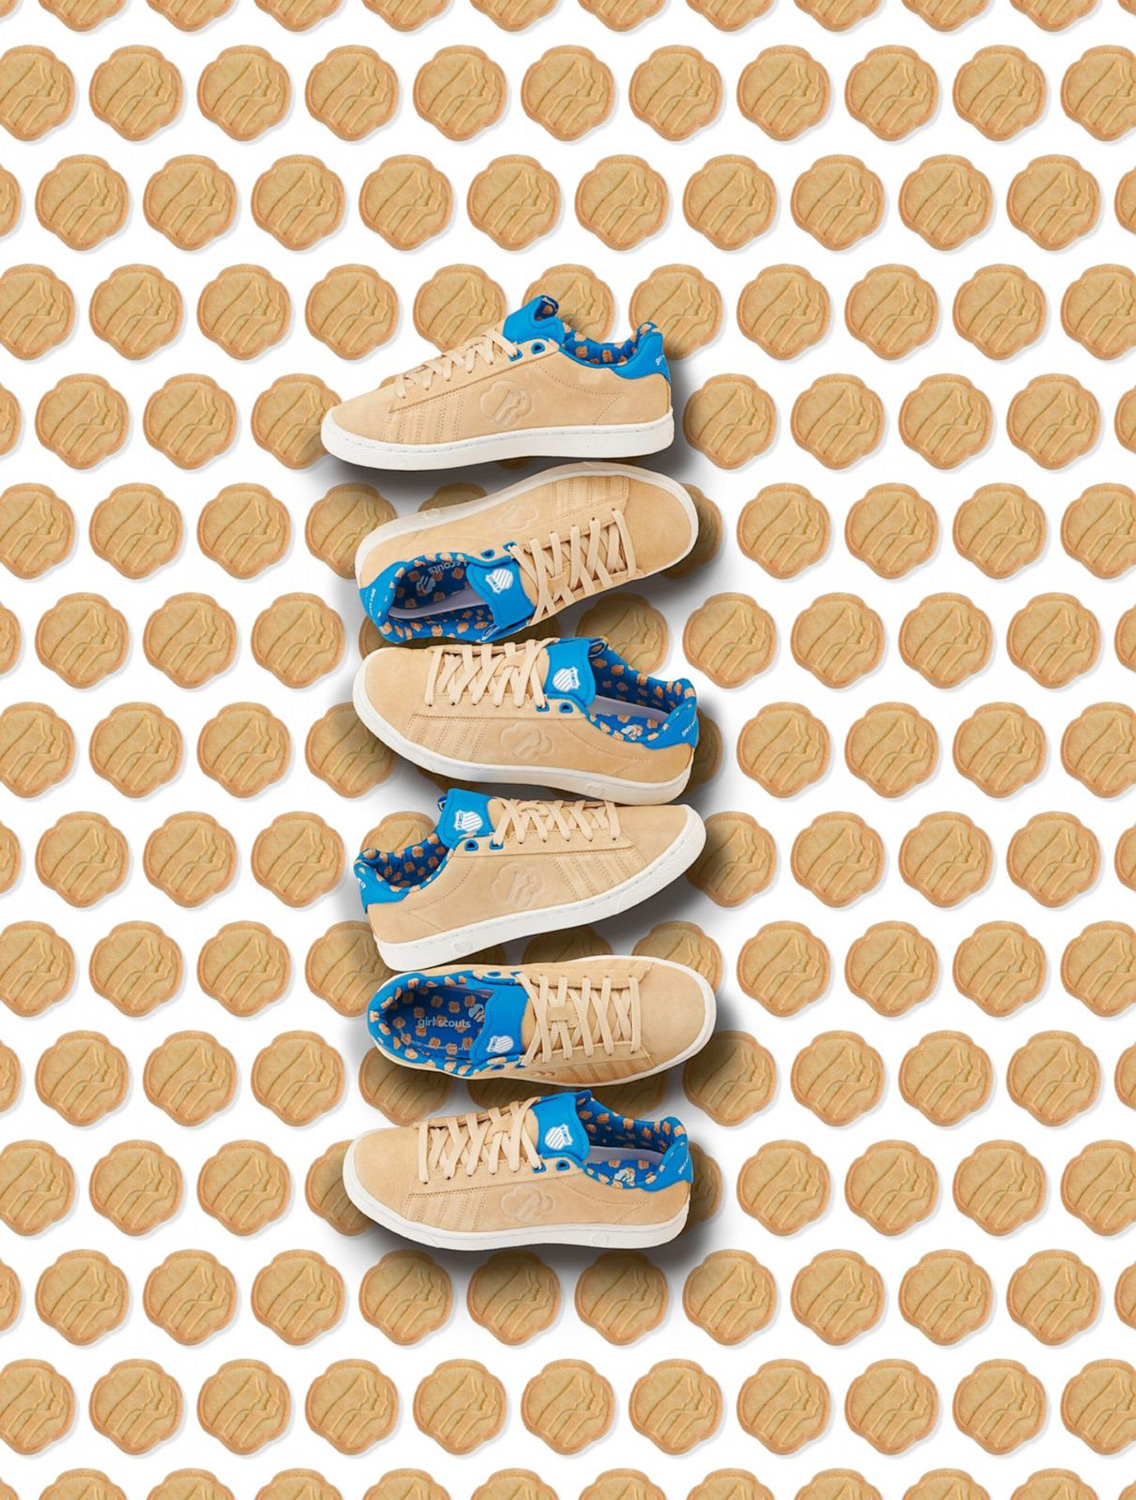 Girl Scout cookie shoes